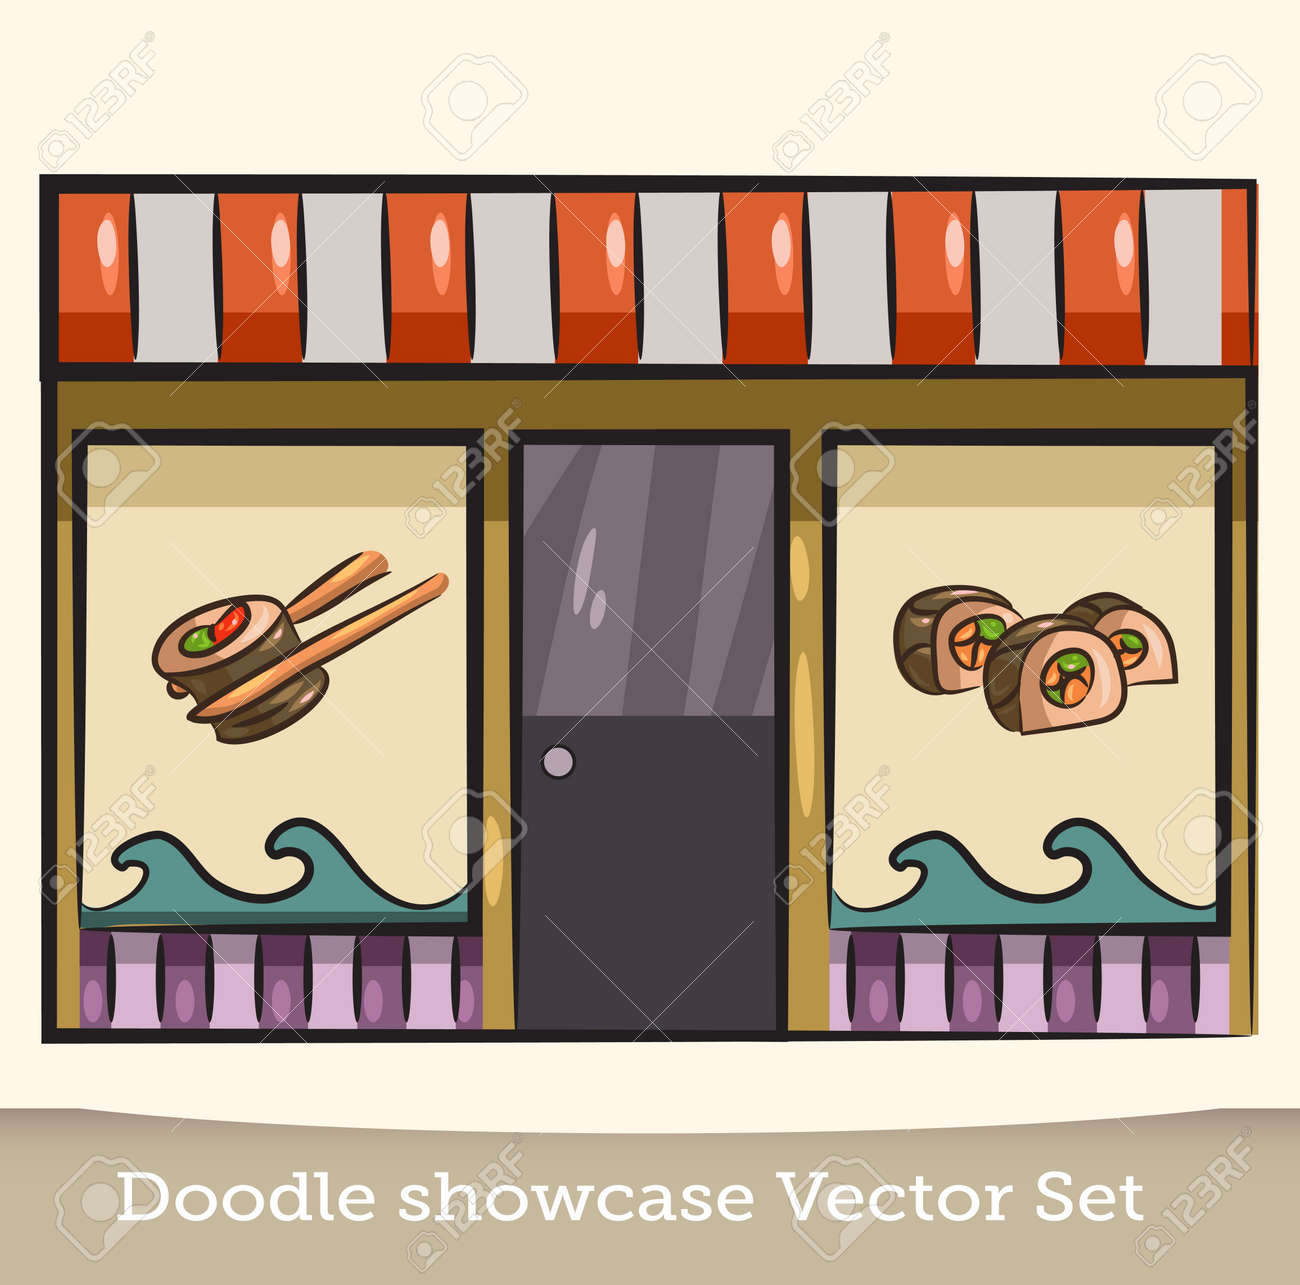 Doodle Showcase Sushi Restaurant Vector Set Royalty Free Cliparts Vectors And Stock Illustration Image 126876066